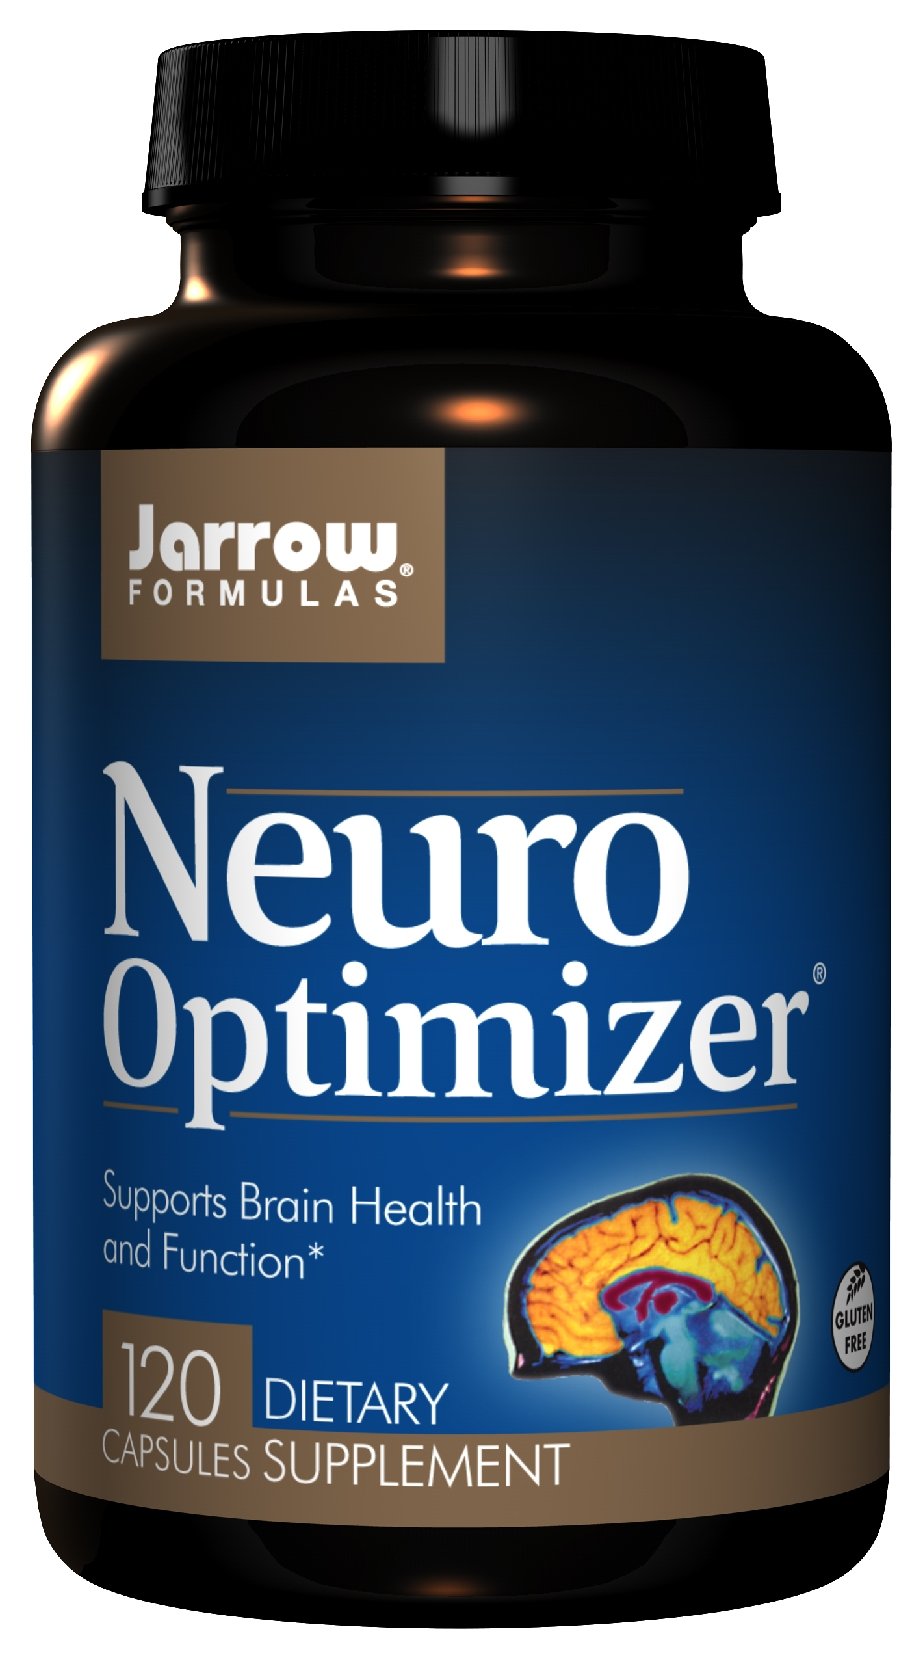 Neuro Optimizer 120 caps by Jarrow Formulas